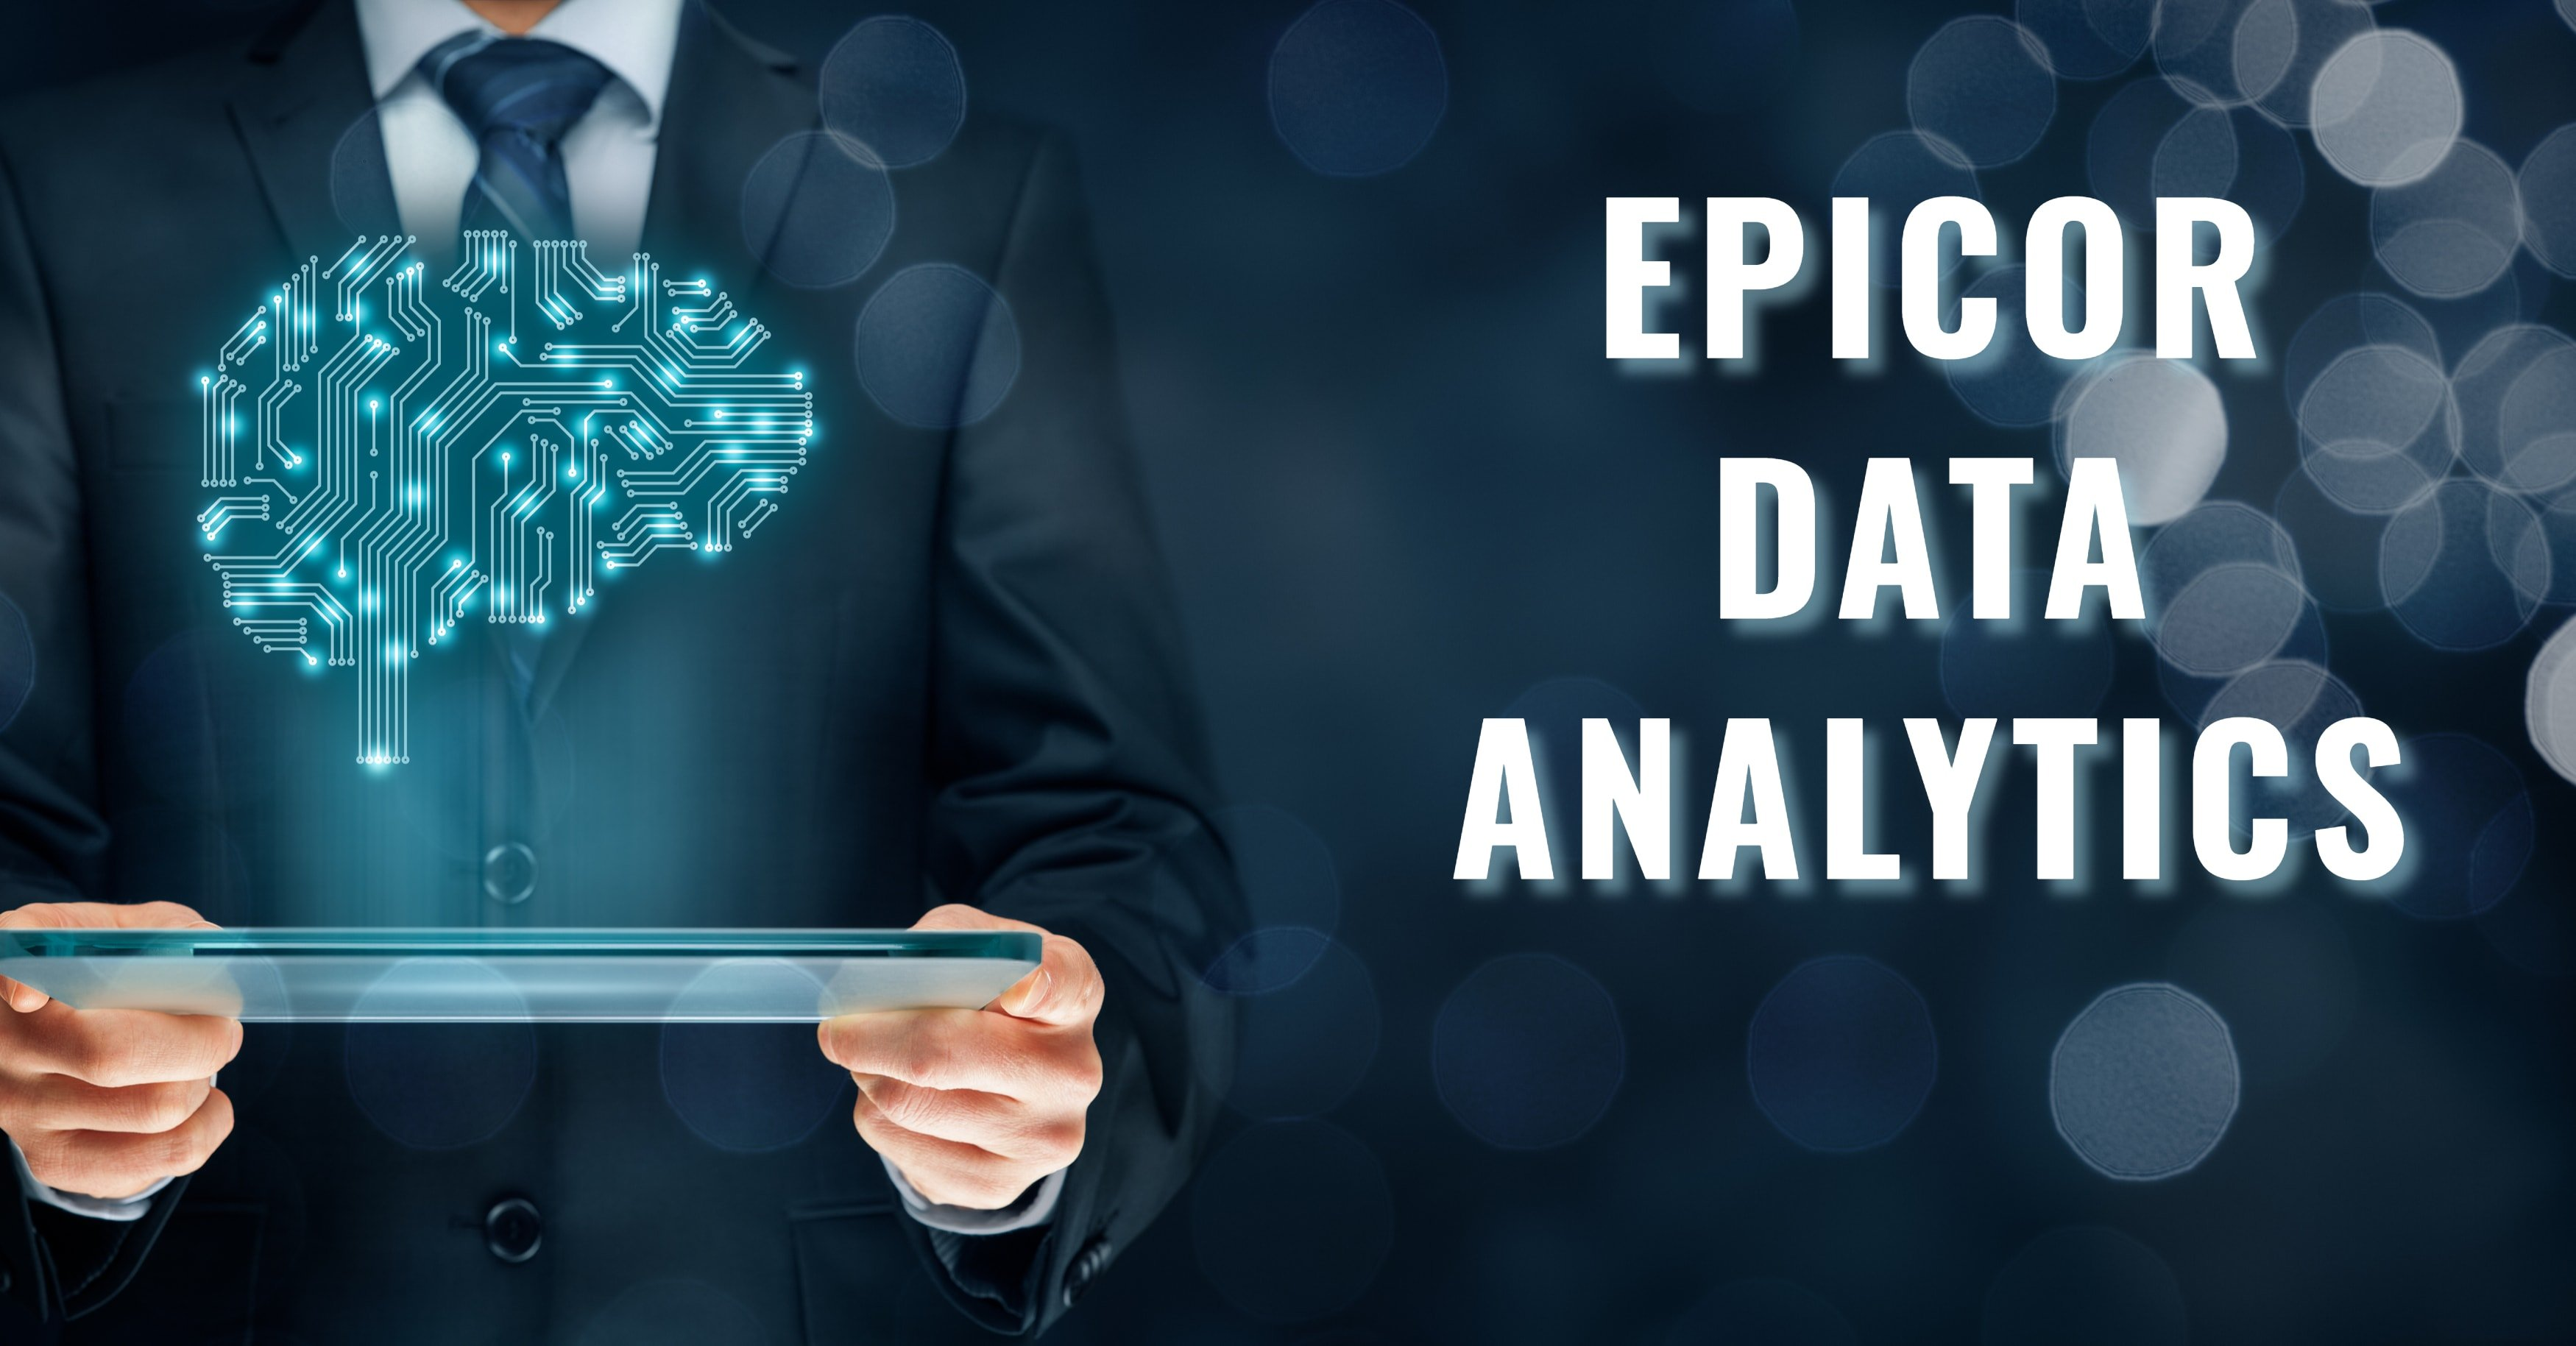 Epicor Data Analytics Earns Top Rankings in New BI Survey